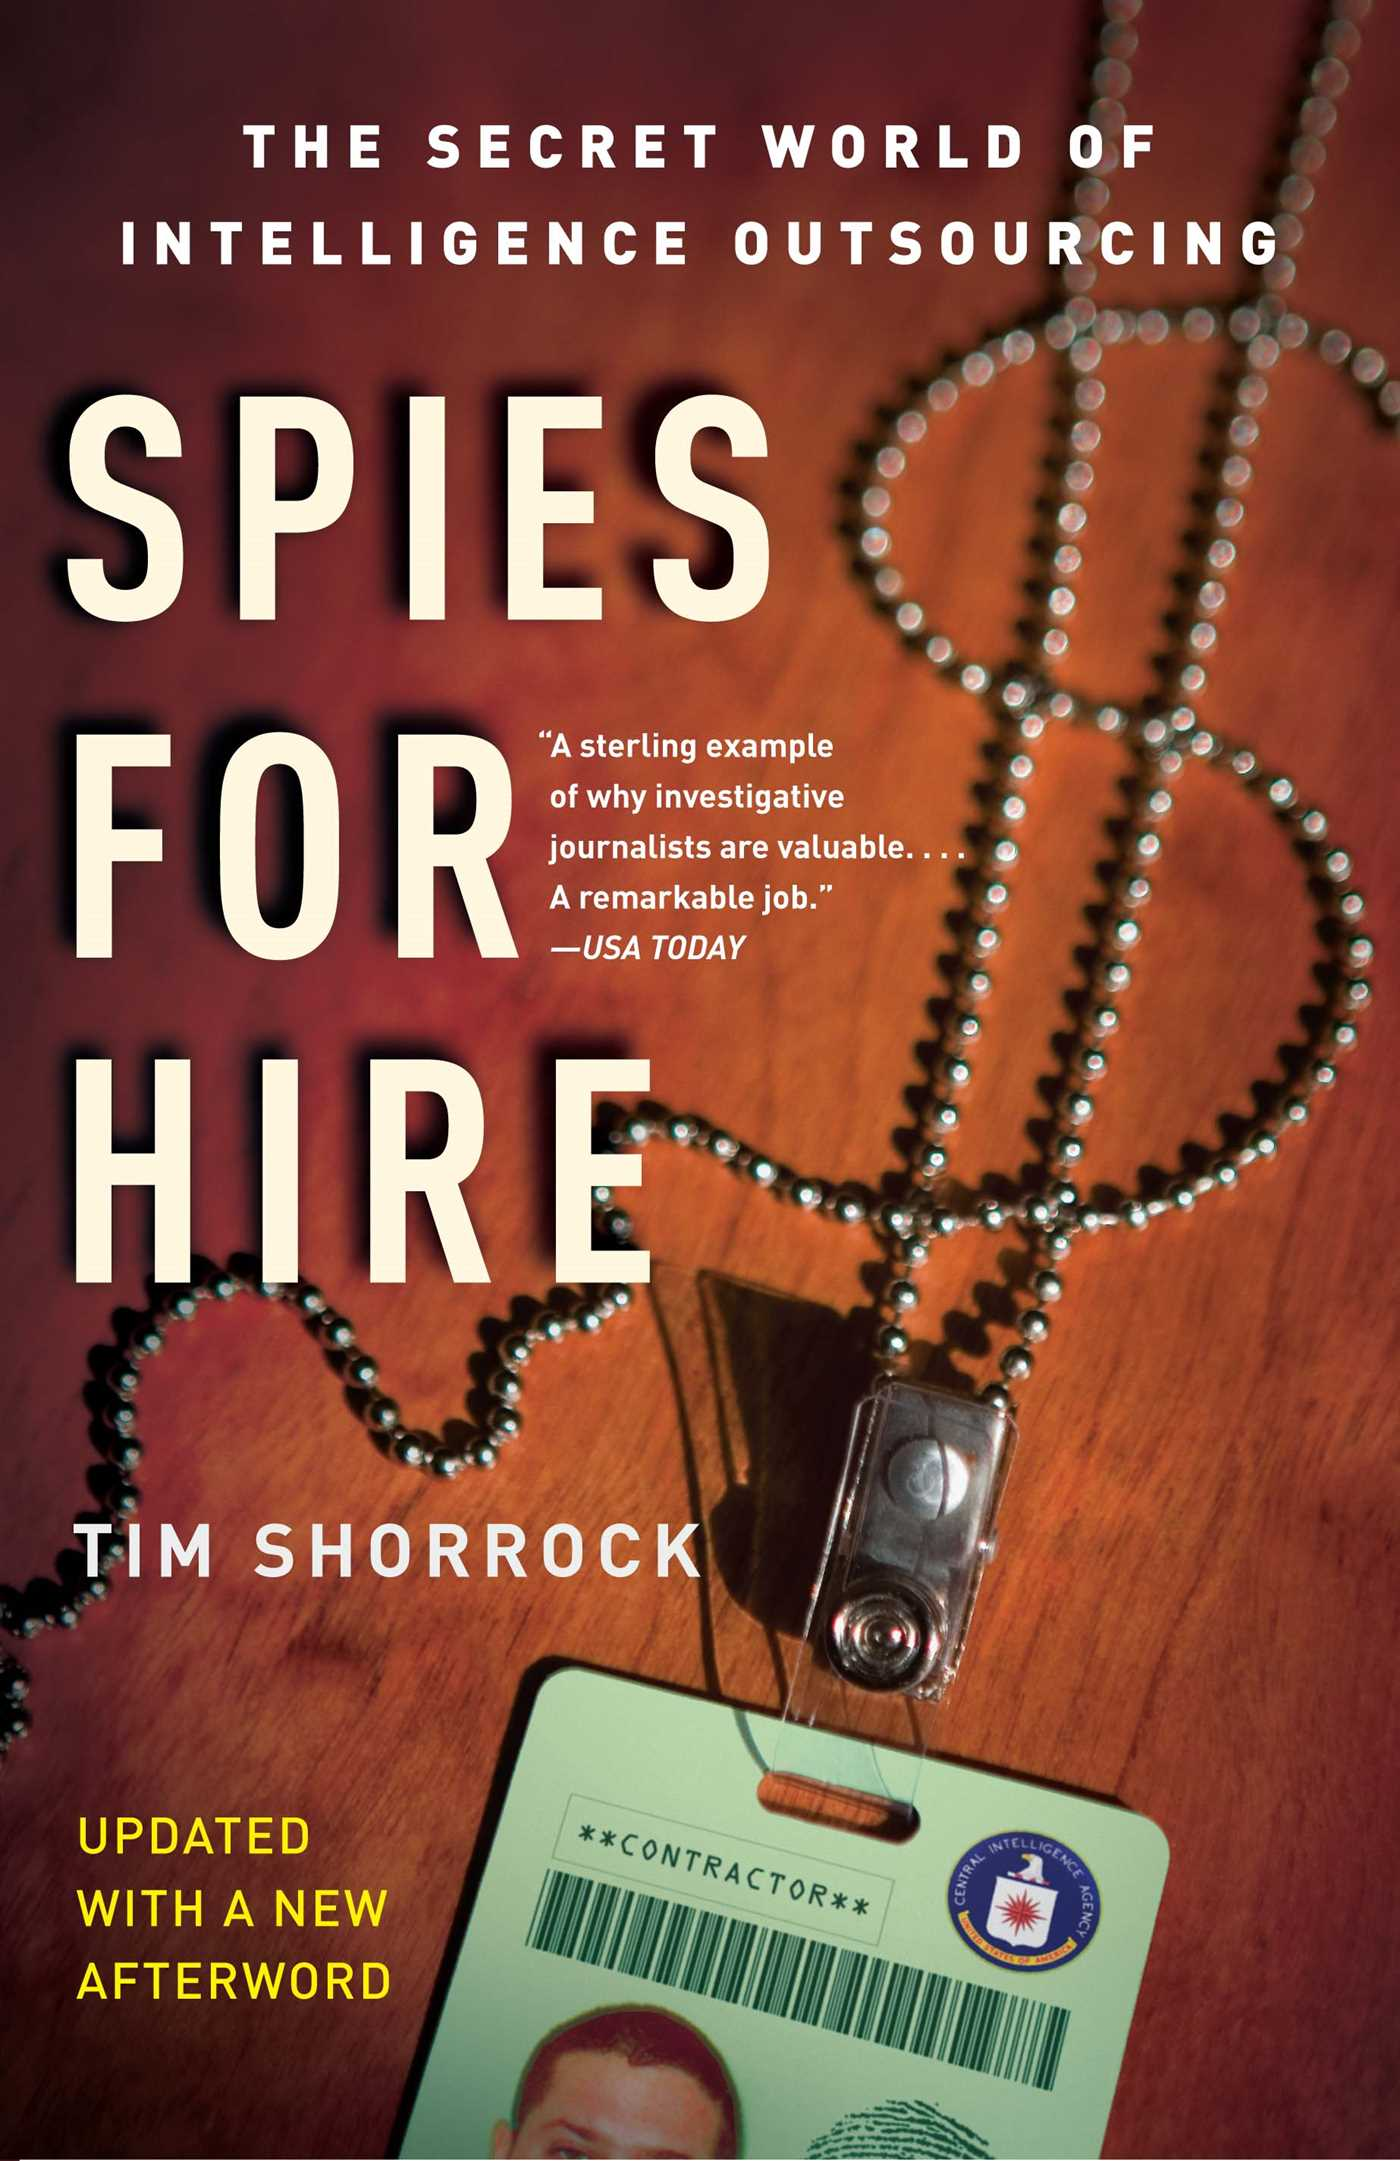 Spies-for-hire-9781416553519_hr